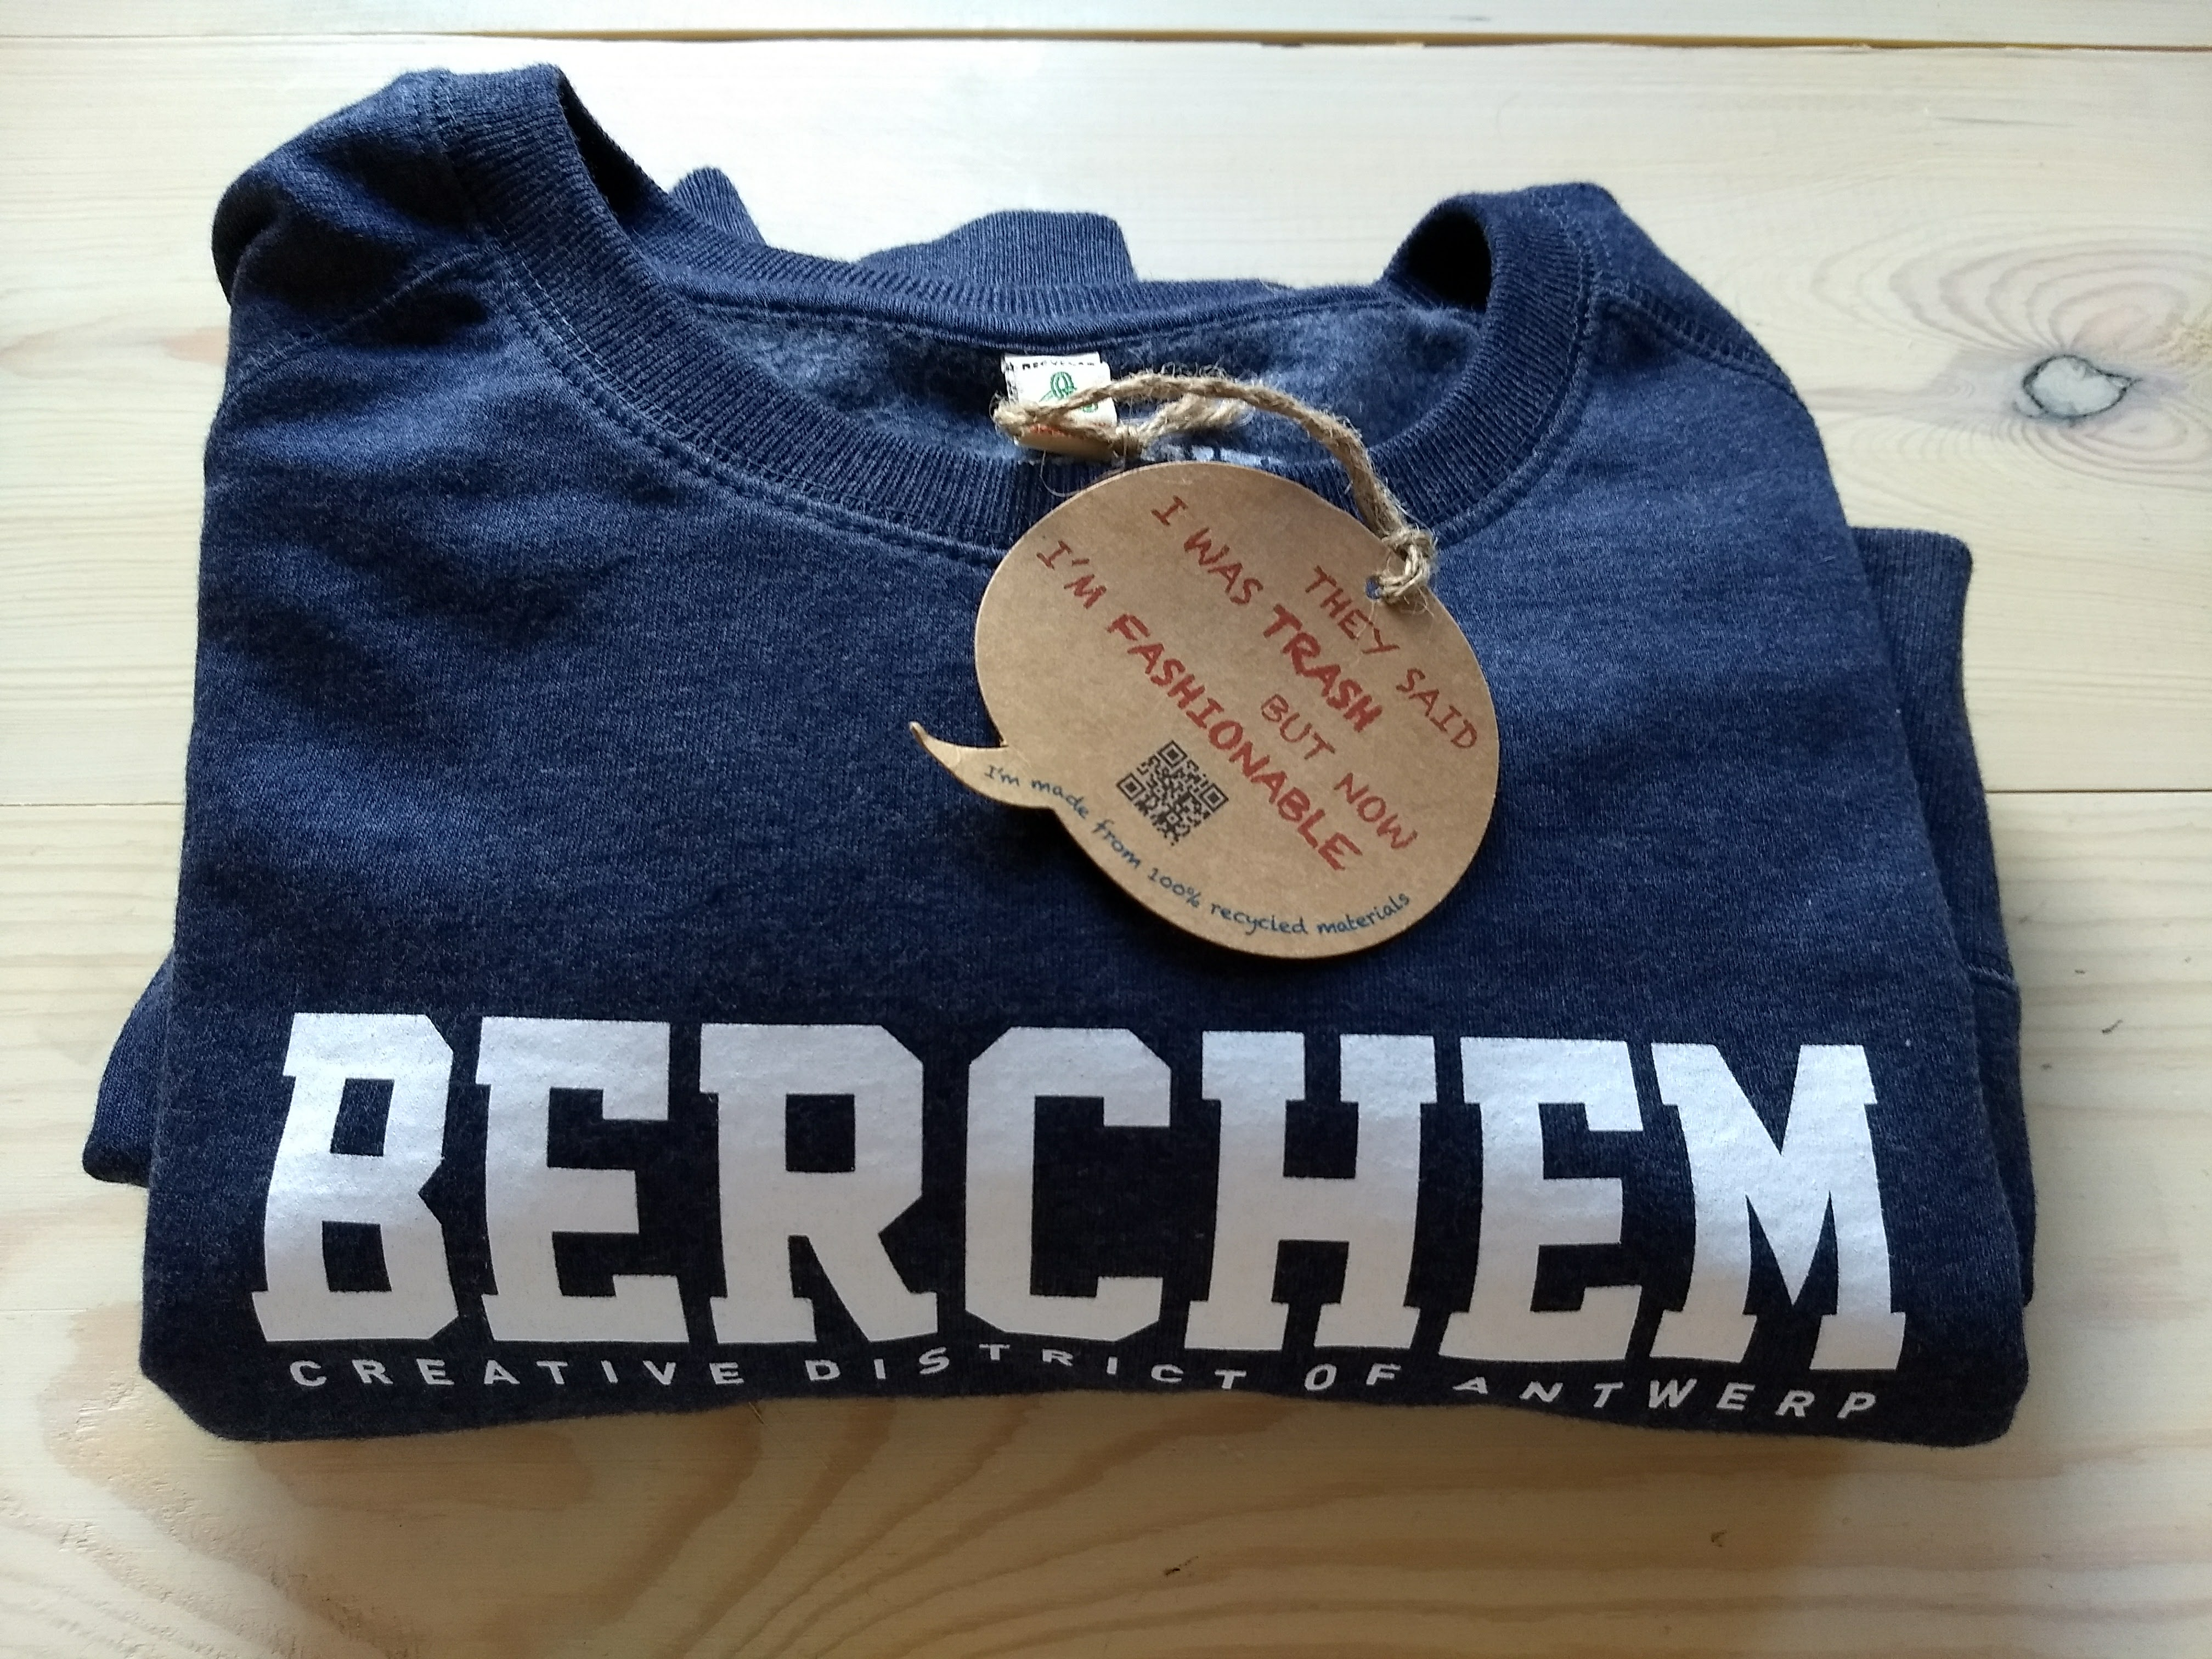 Berchem Salvage fashion recycled